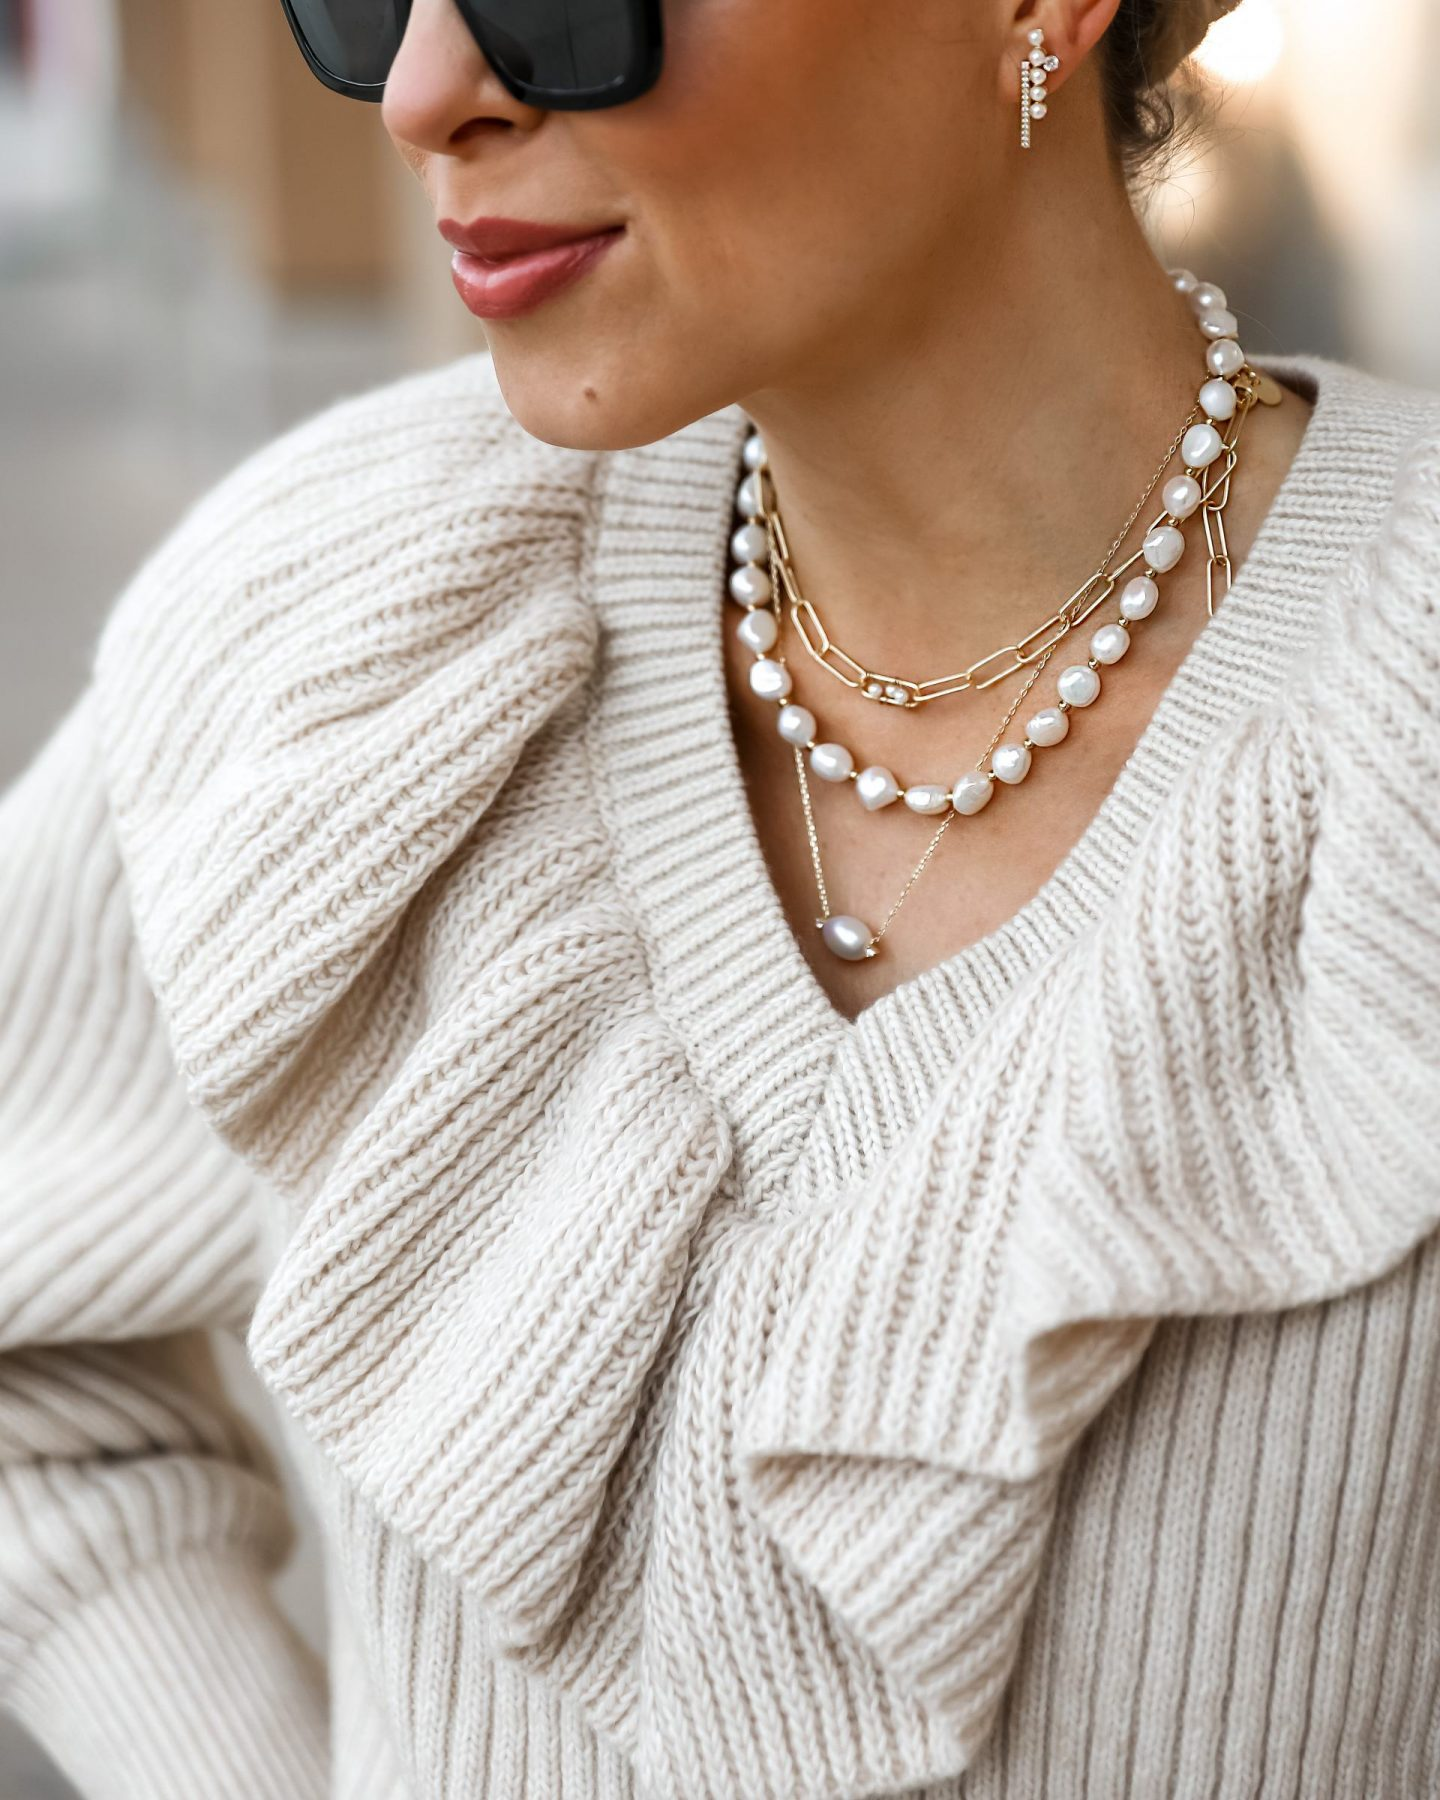 Dainty gold and pearl jewelry from Victoria Emerson, on BOGO sale. Featured by San Francisco fashion blogger Lombard & Fifth.